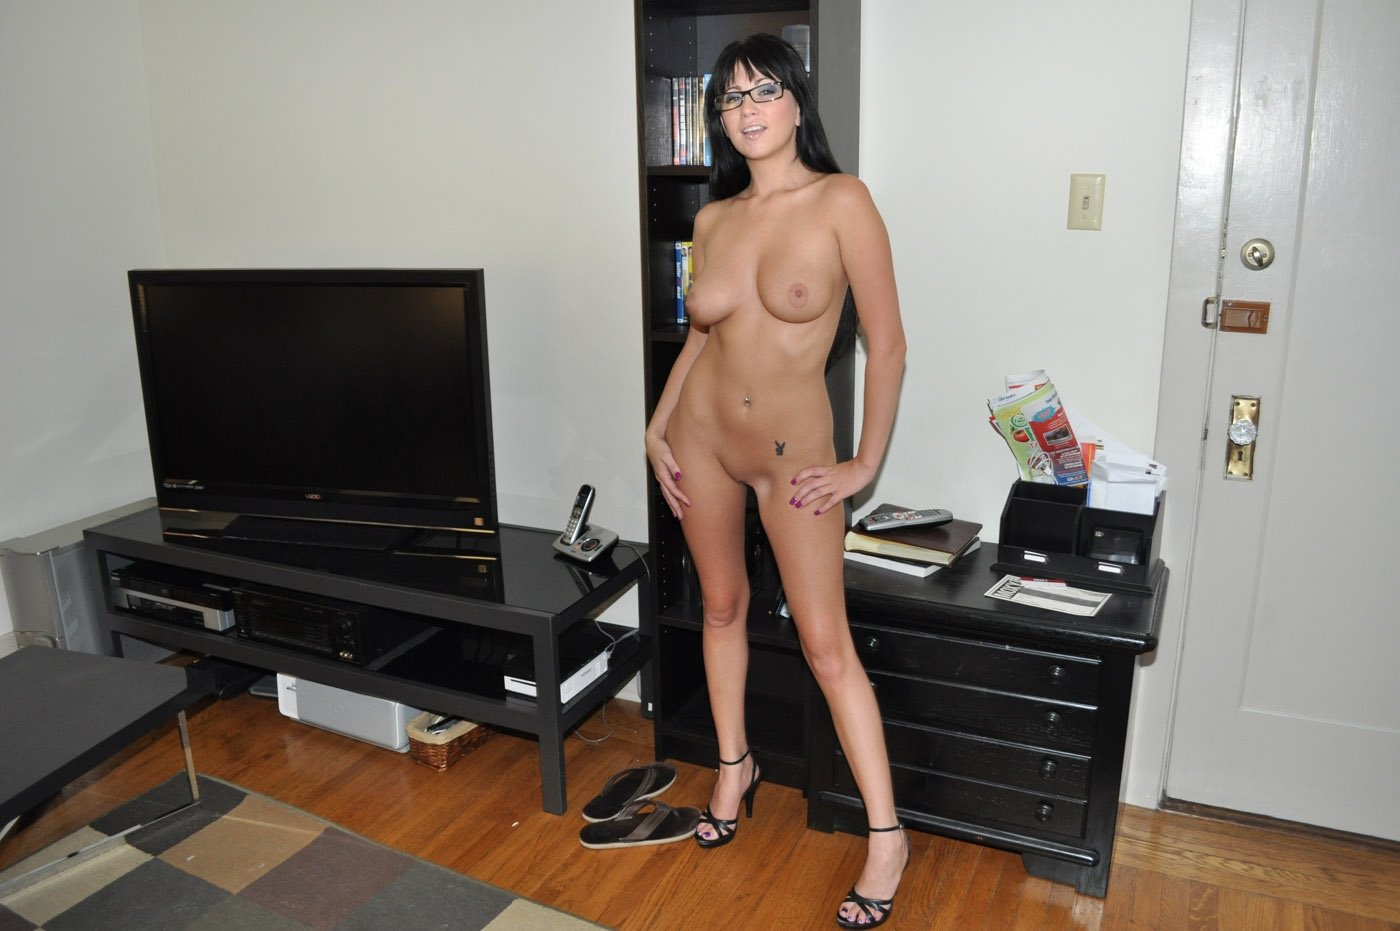 wife nude and clothed add photo